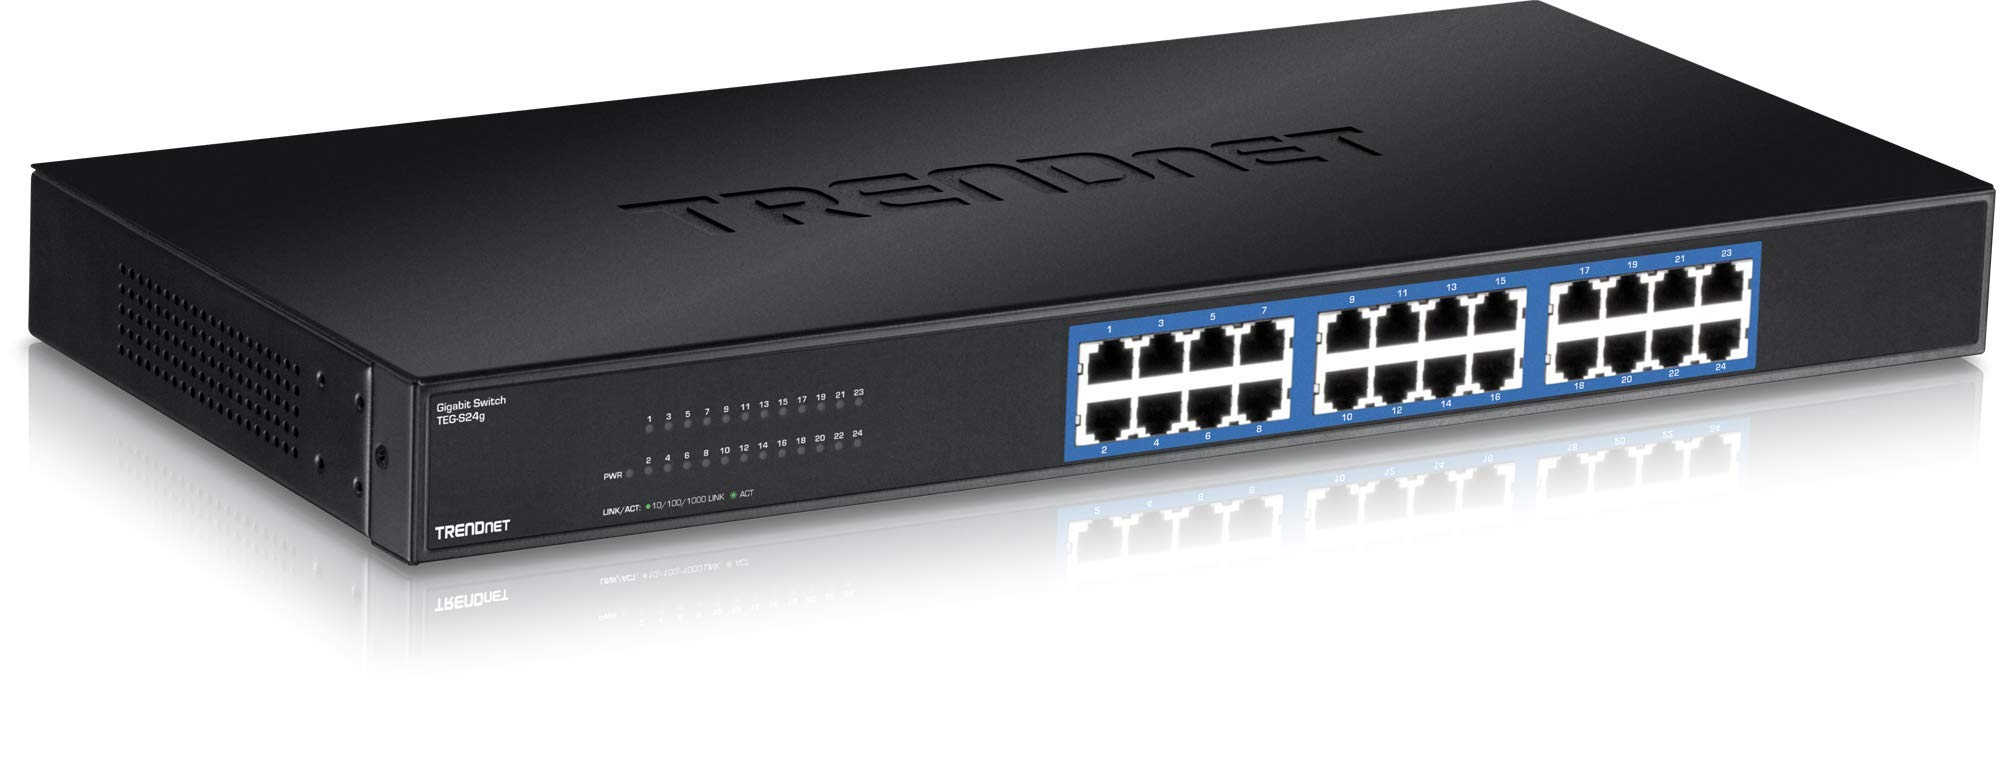 10//100//1000 Mbps TRENDnet 8-Port Gigabit GREENnet Switch 16 Gbps Switching ...